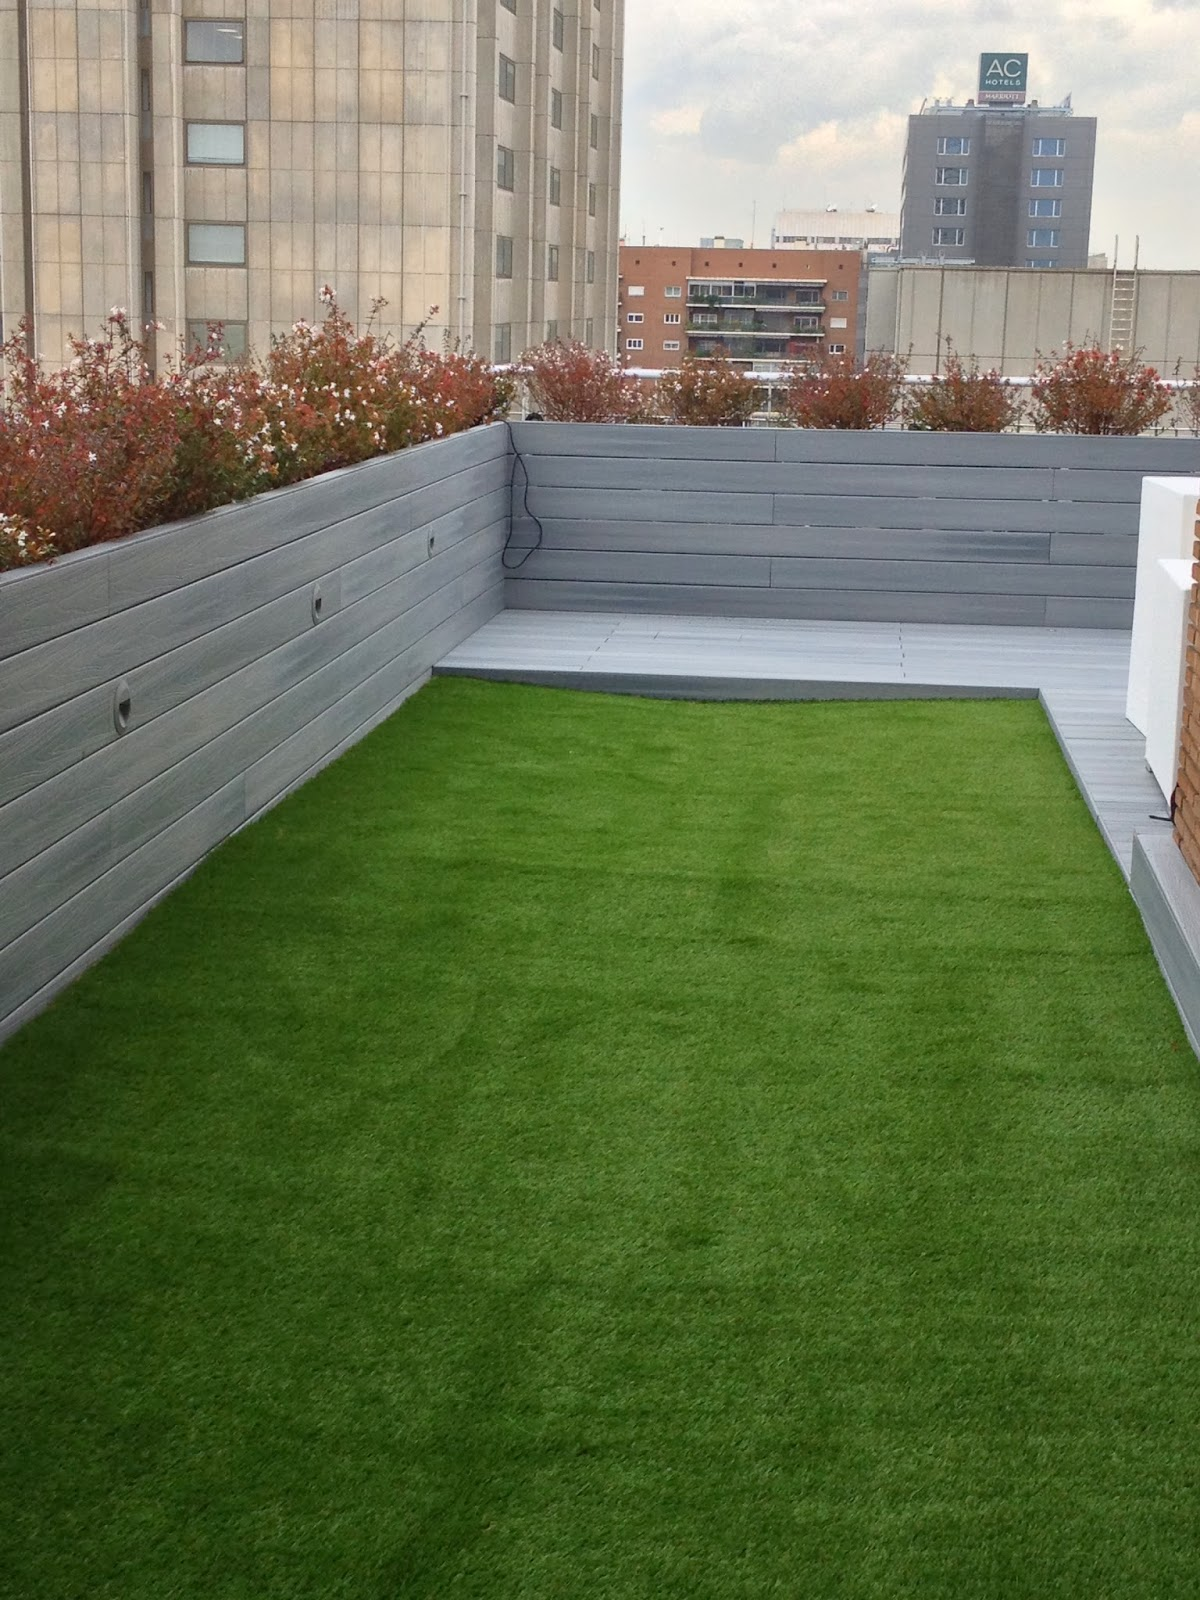 Blog cesped artificial cesped artificial terrazas - Cesped artificial terraza ...